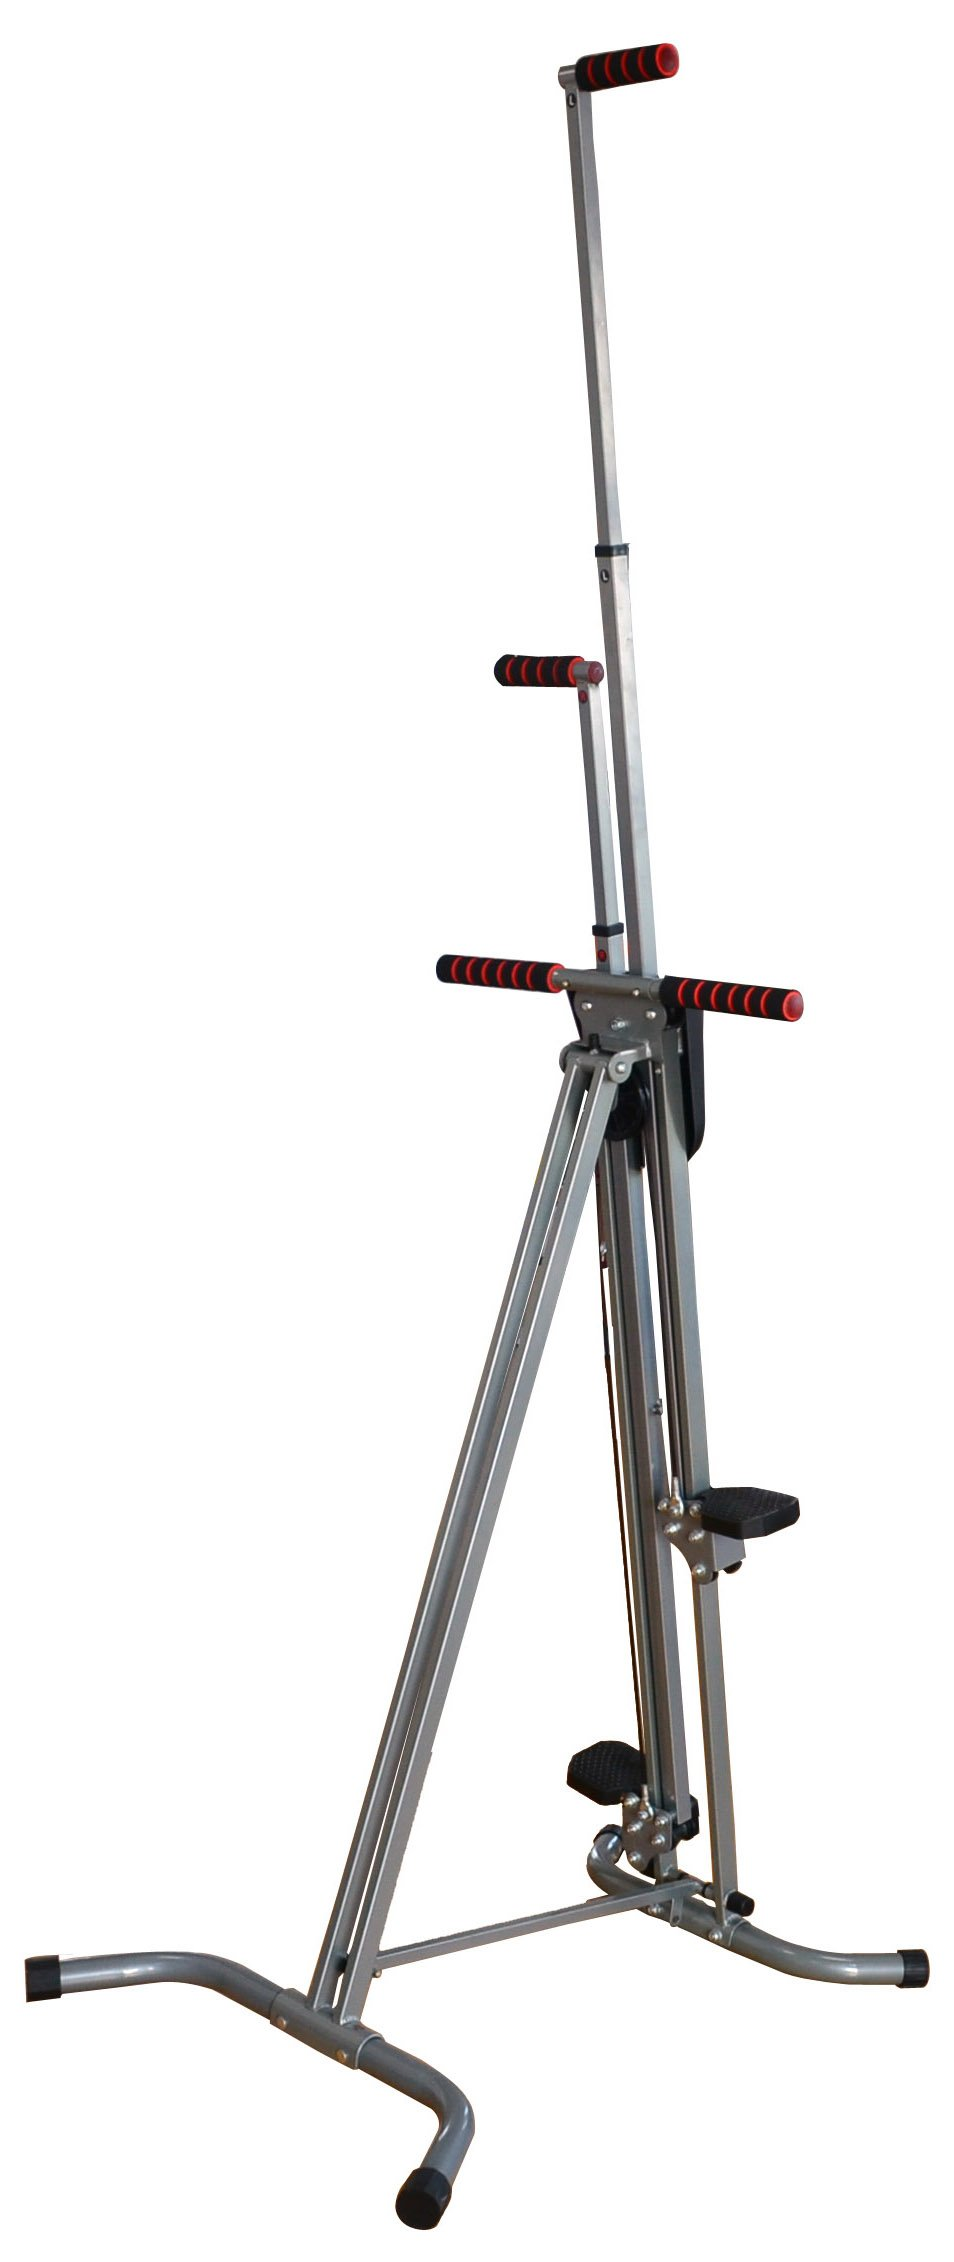 BalanceFrom Vertical Climber with Cast Iron Frame and Digital Display [Newest Version] by BalanceFrom (Image #2)